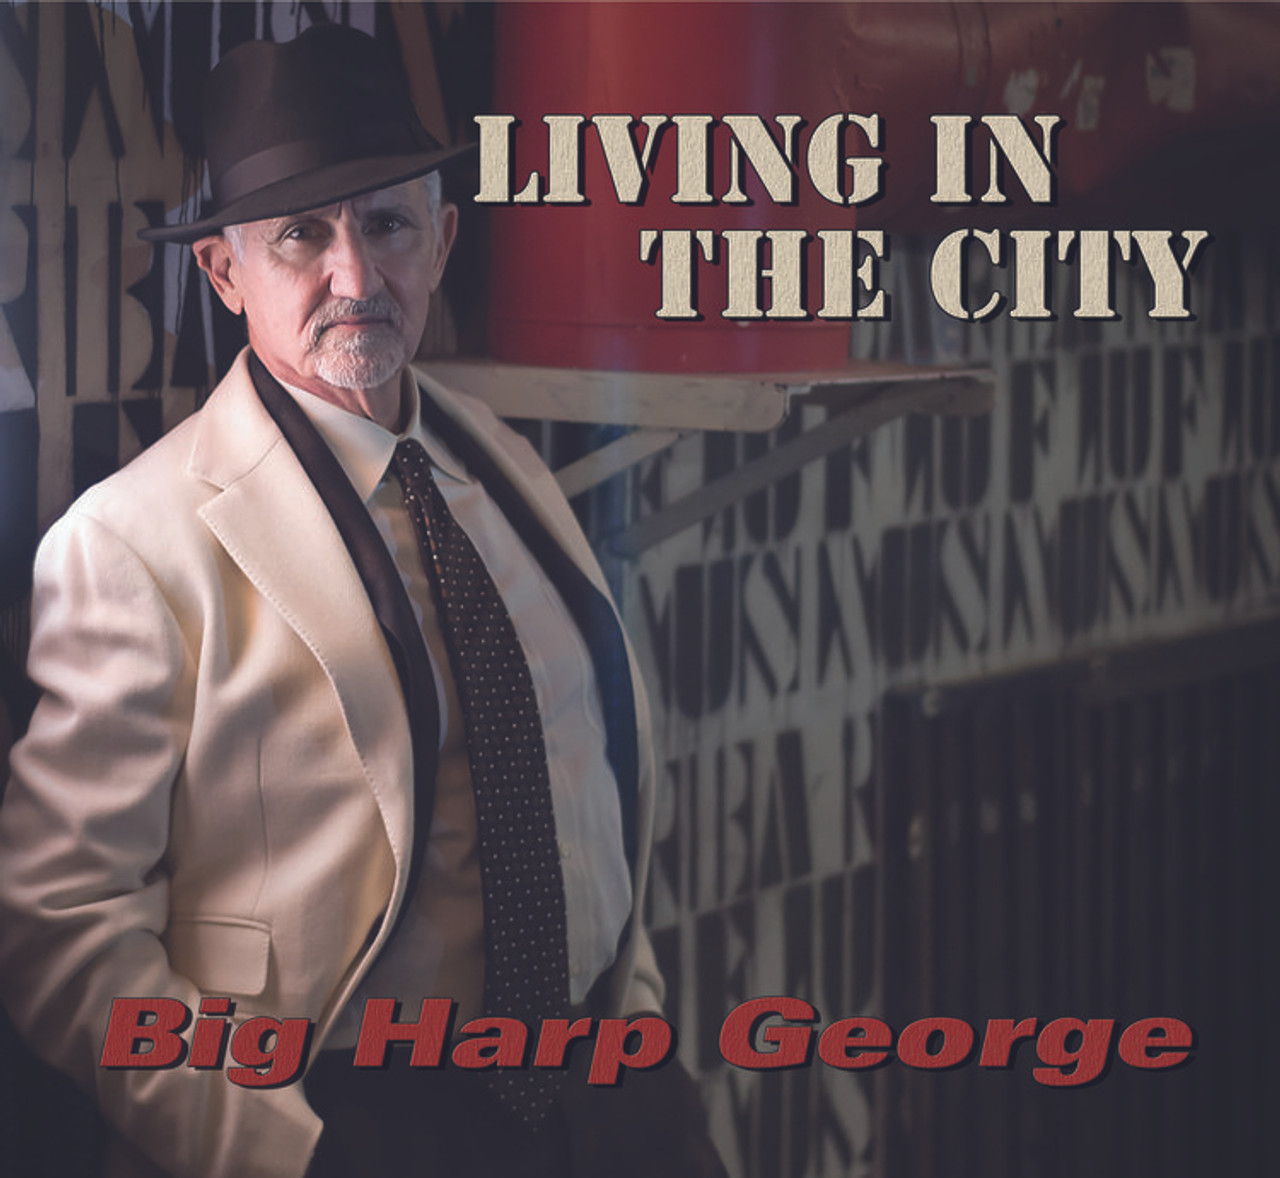 BIG HARP GEORGE - LIVING IN THE CITY